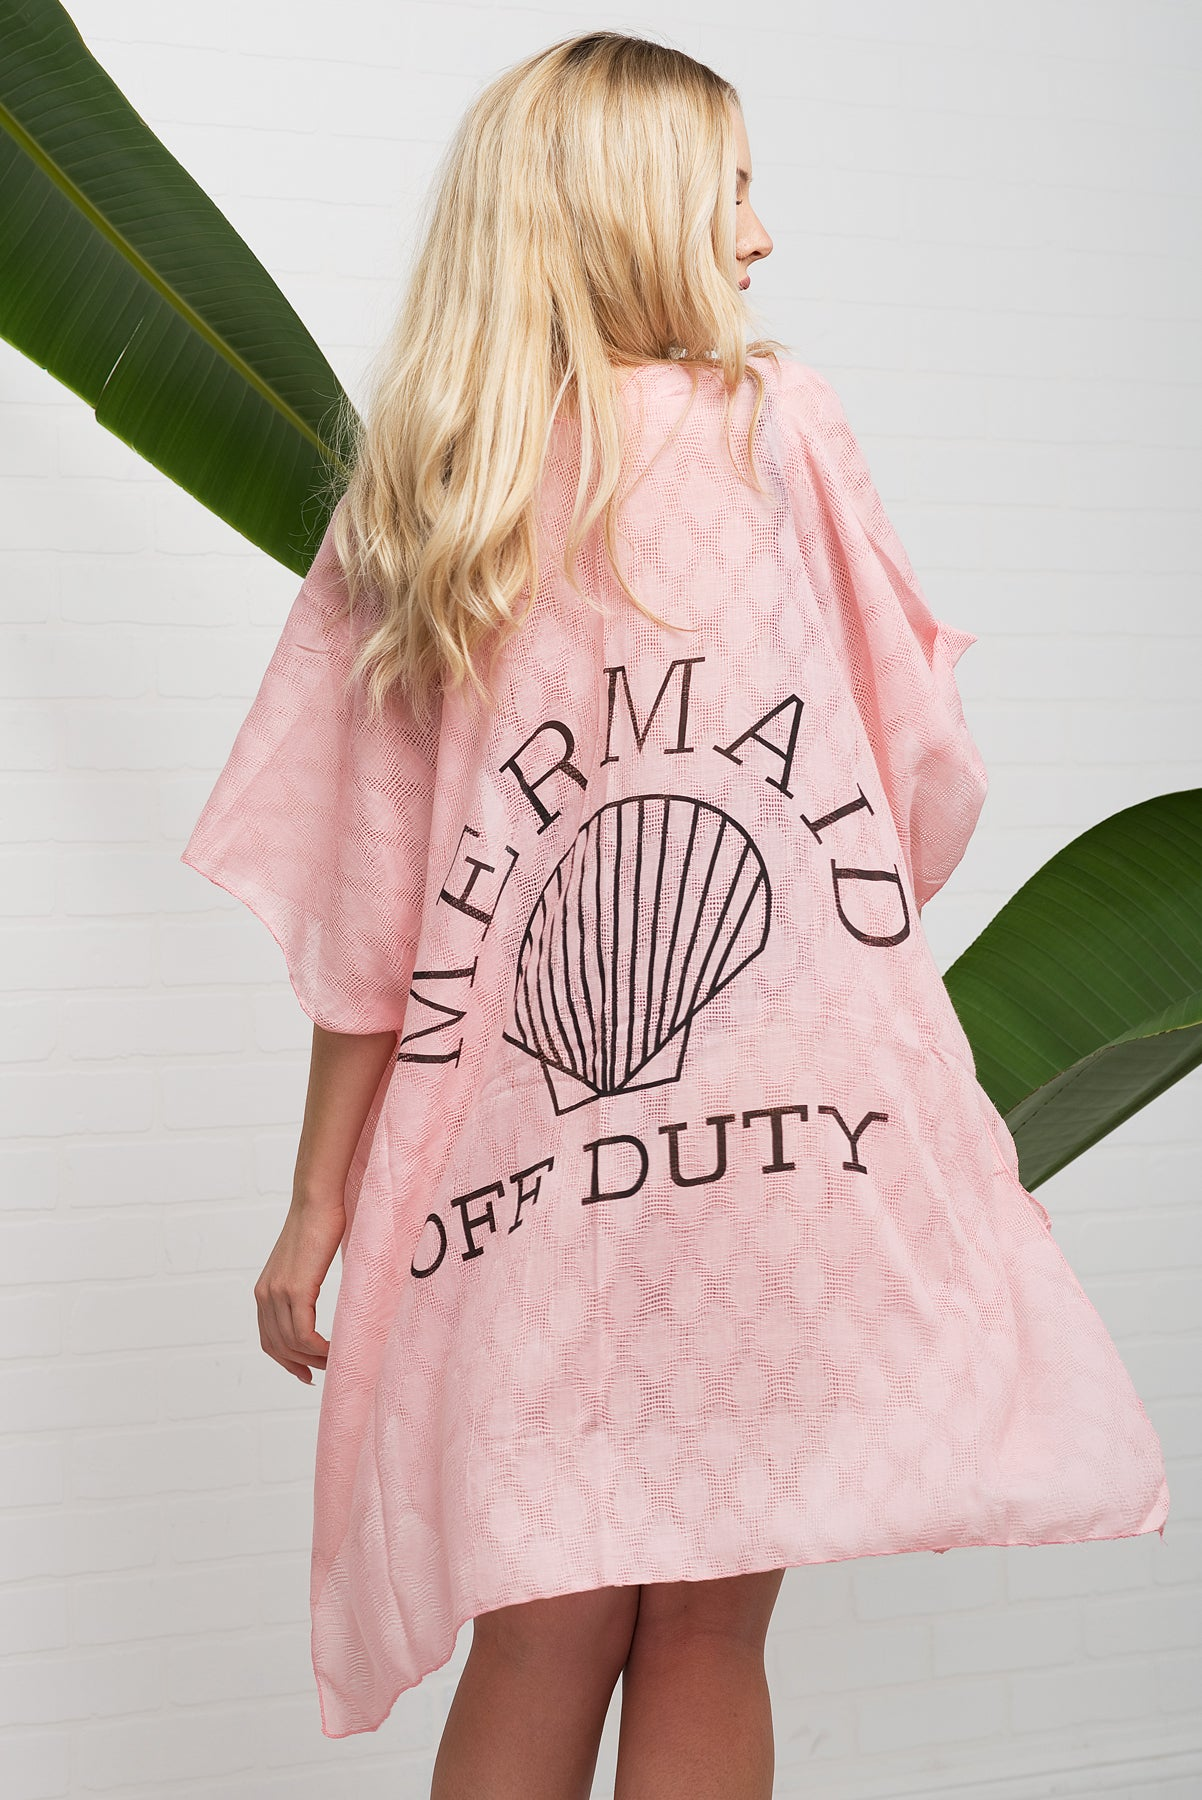 Mermaid Off Duty Cover Up